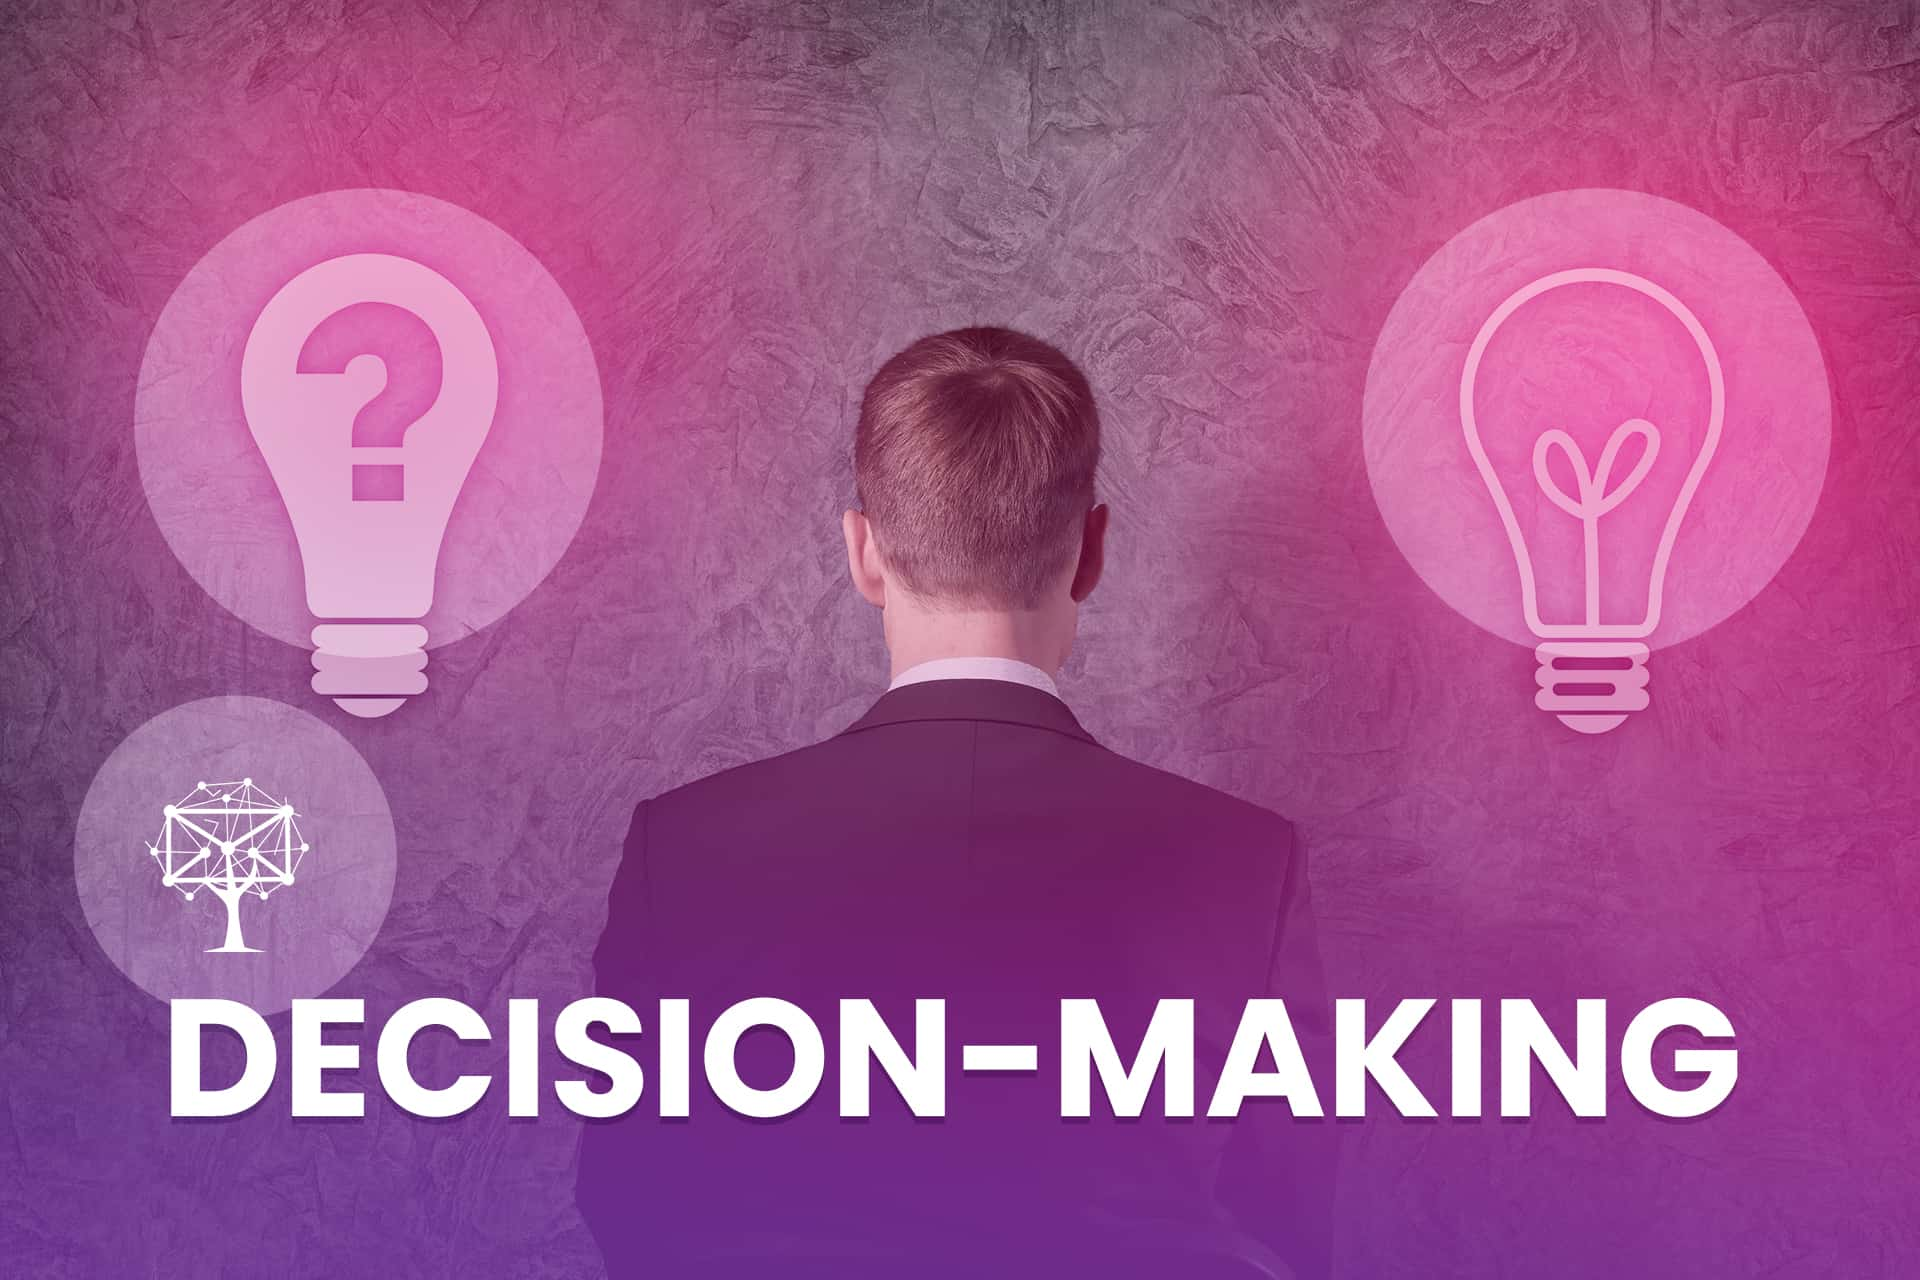 Making decisions is a customer service skill